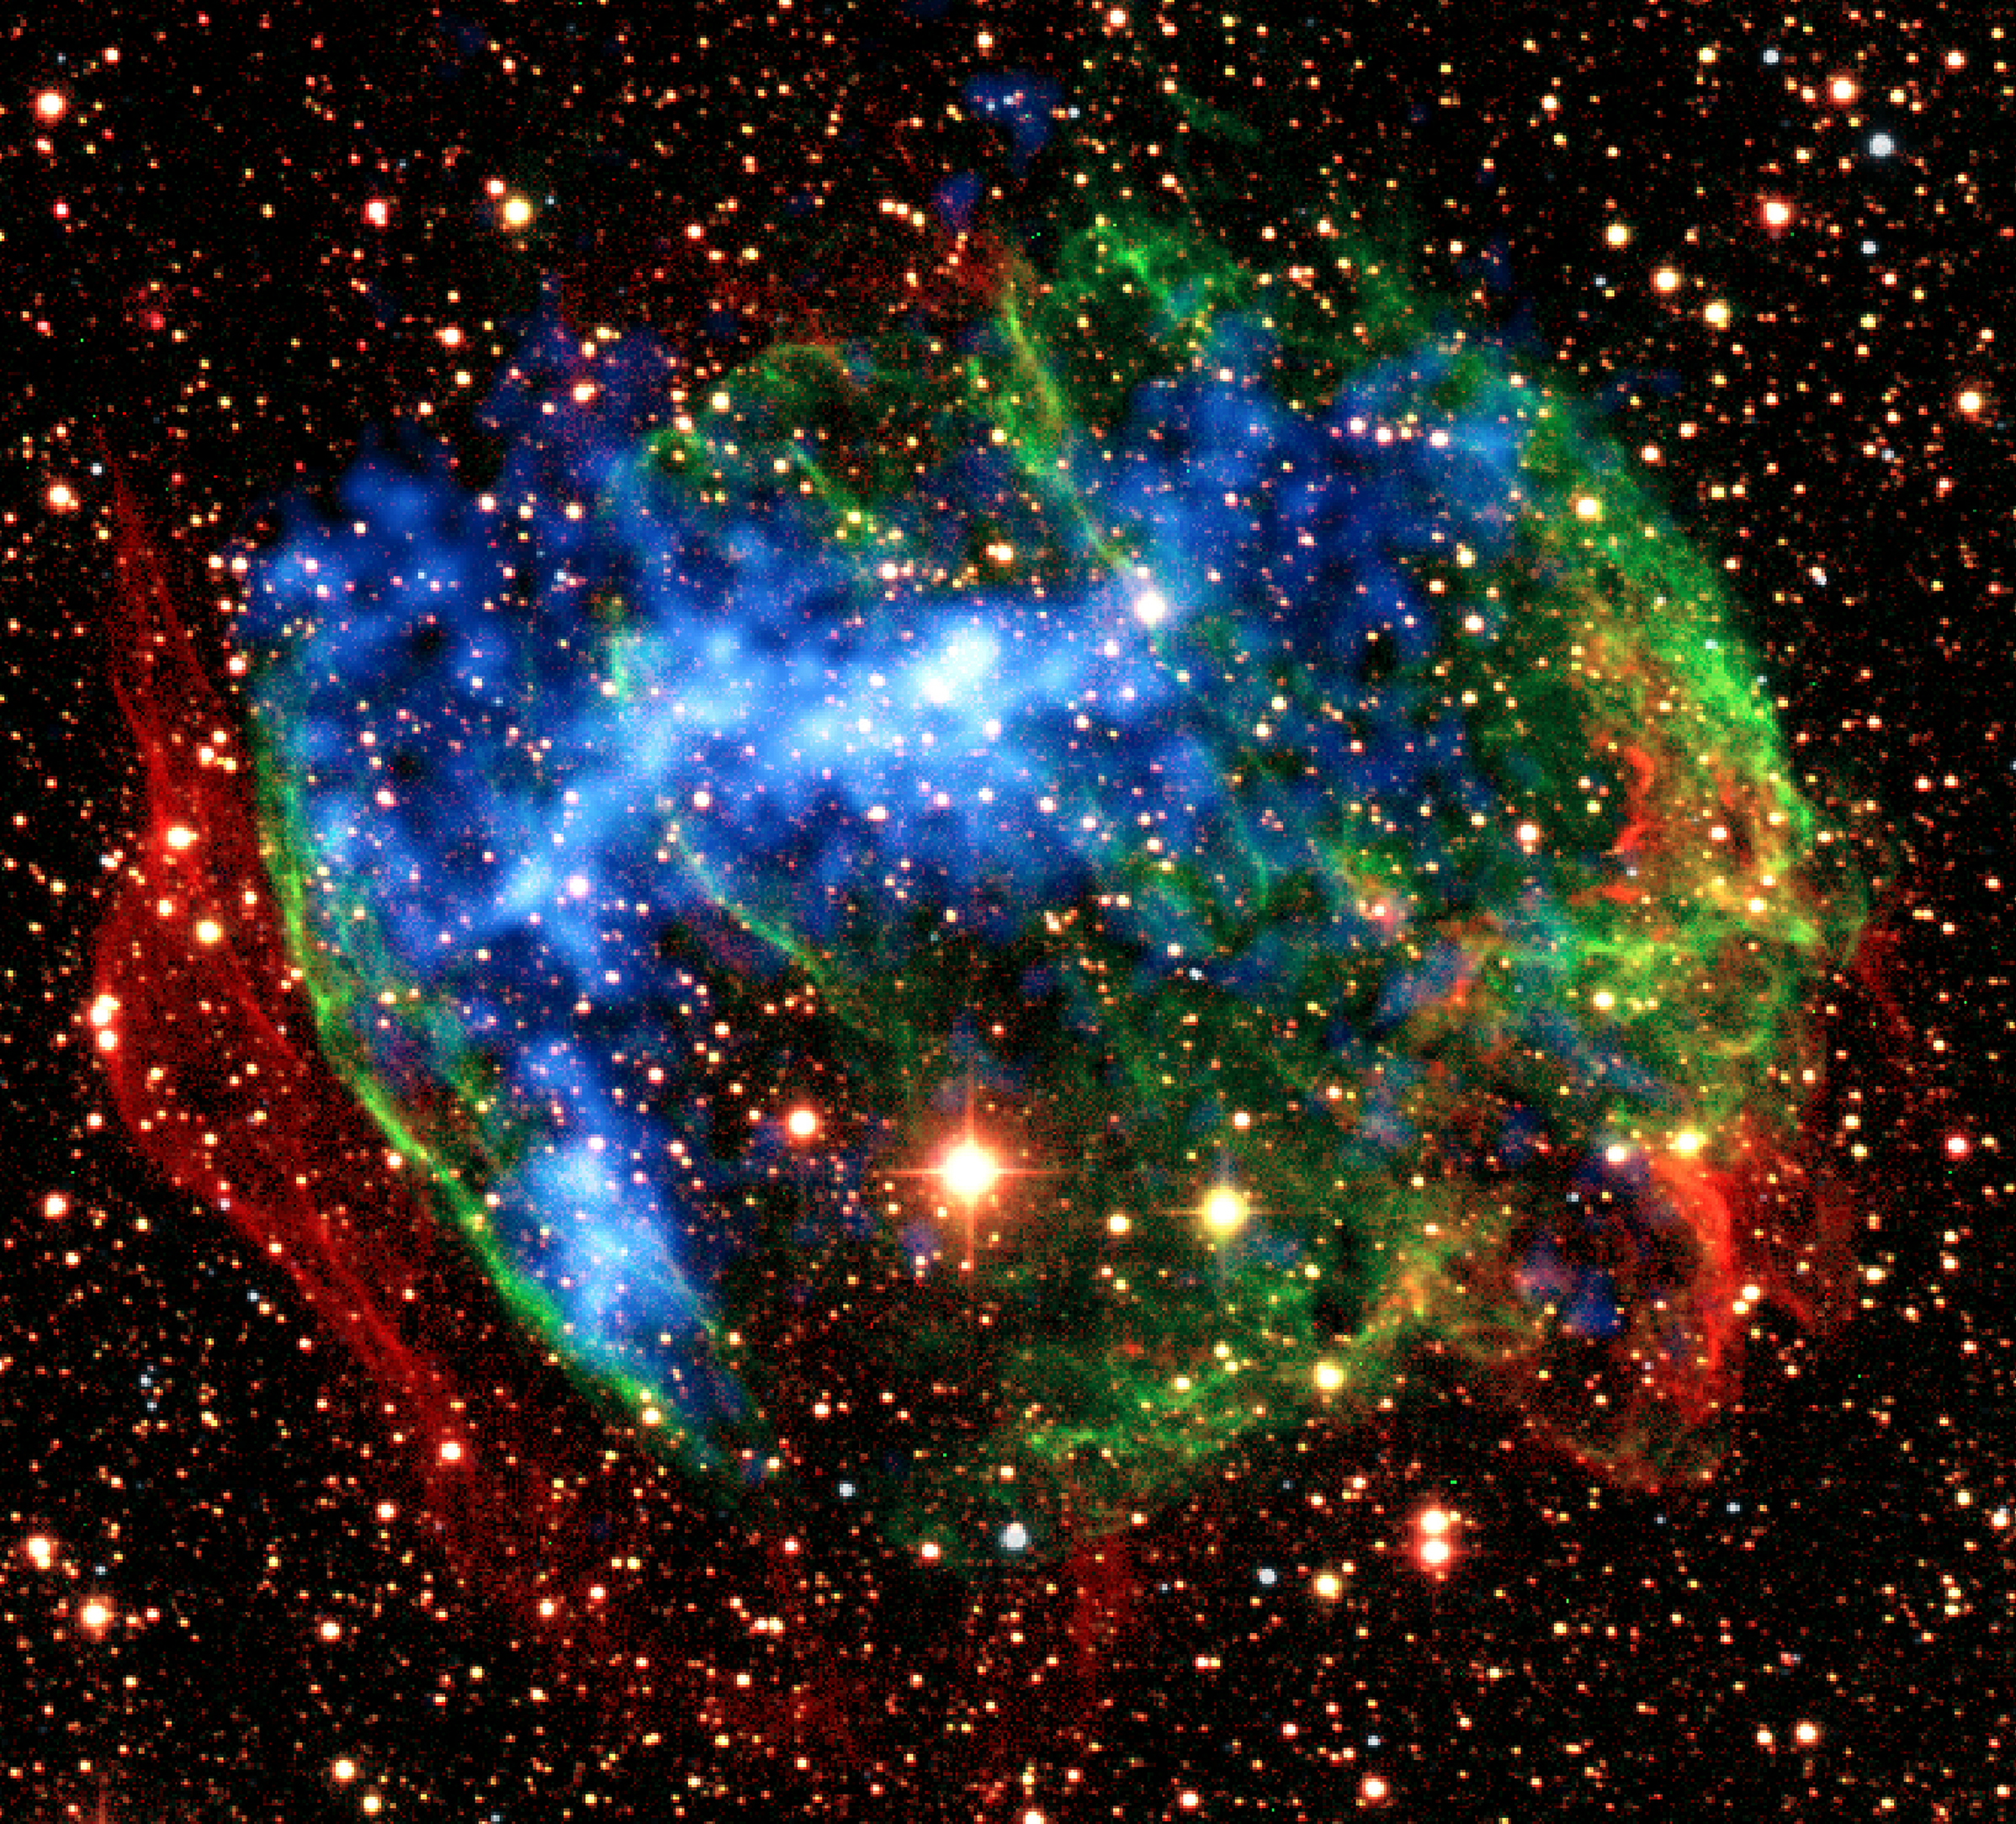 In the supernova remnant W49B, Suzaku found another fossil fireball. It detected X-rays produced when heavily ionized iron atoms recapture an electron